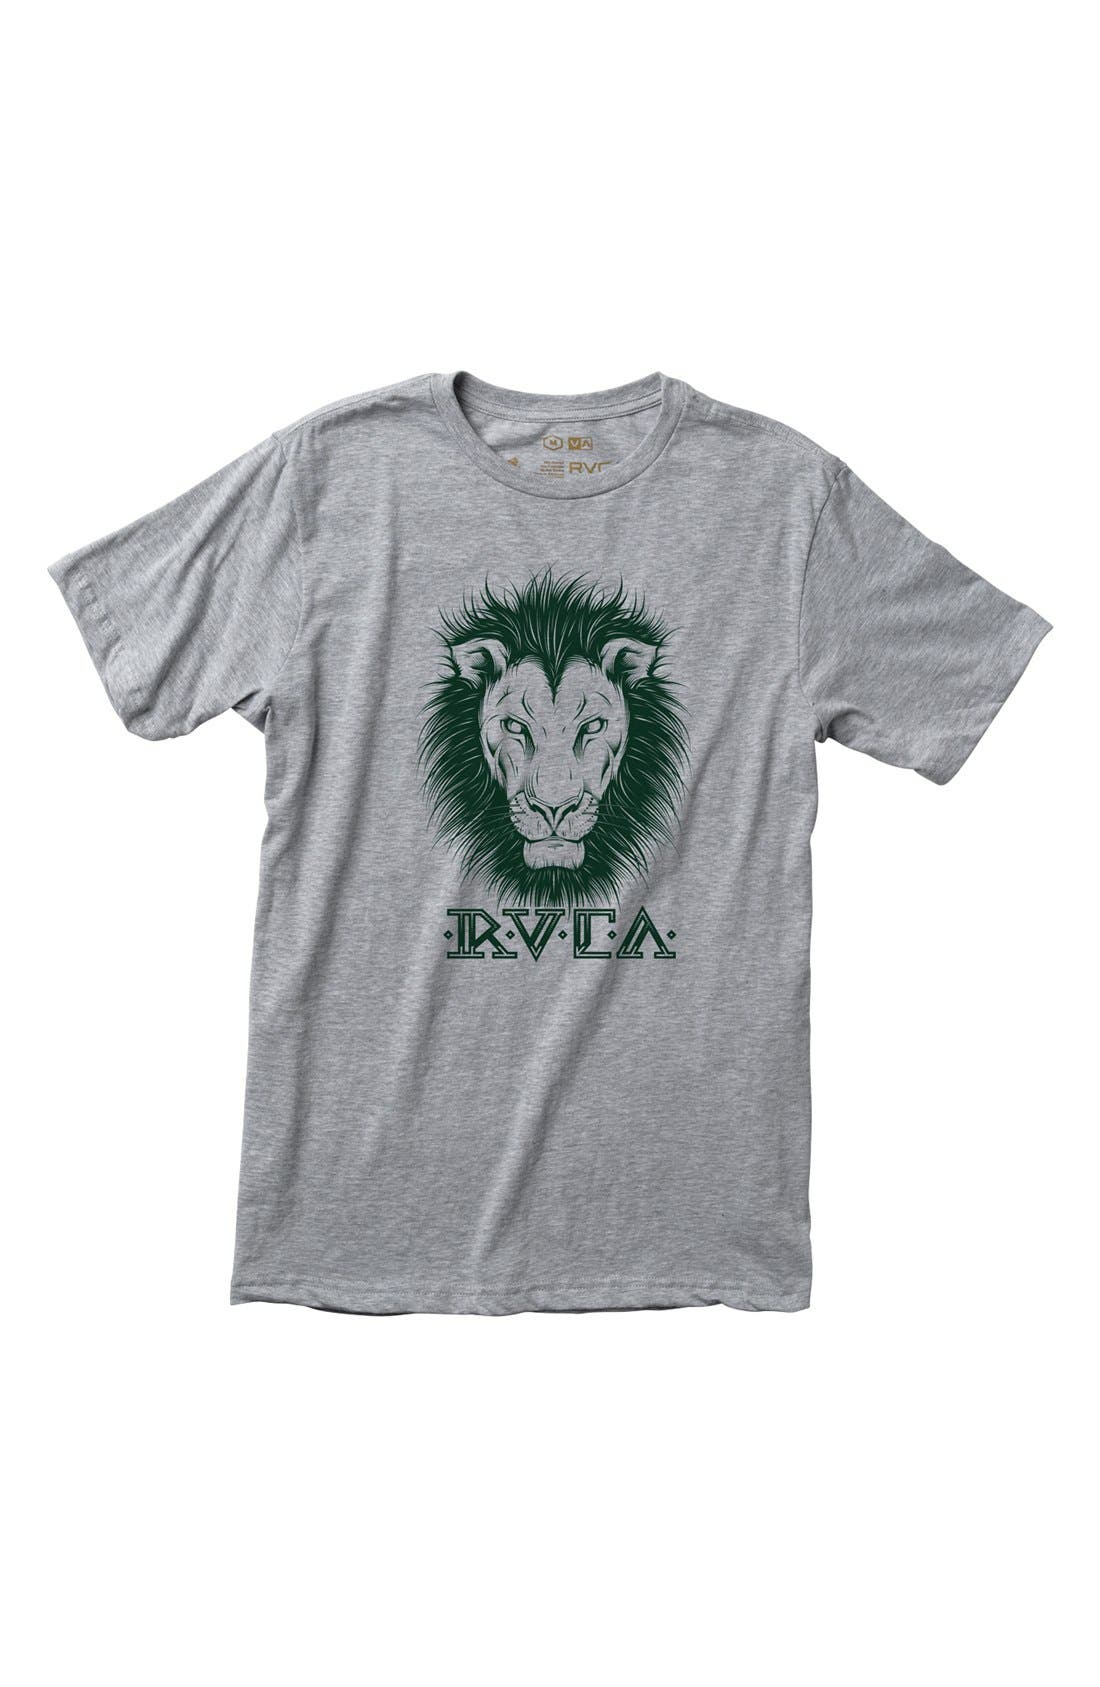 Alternate Image 1 Selected - RVCA 'Lions' T-Shirt (Big Boys)